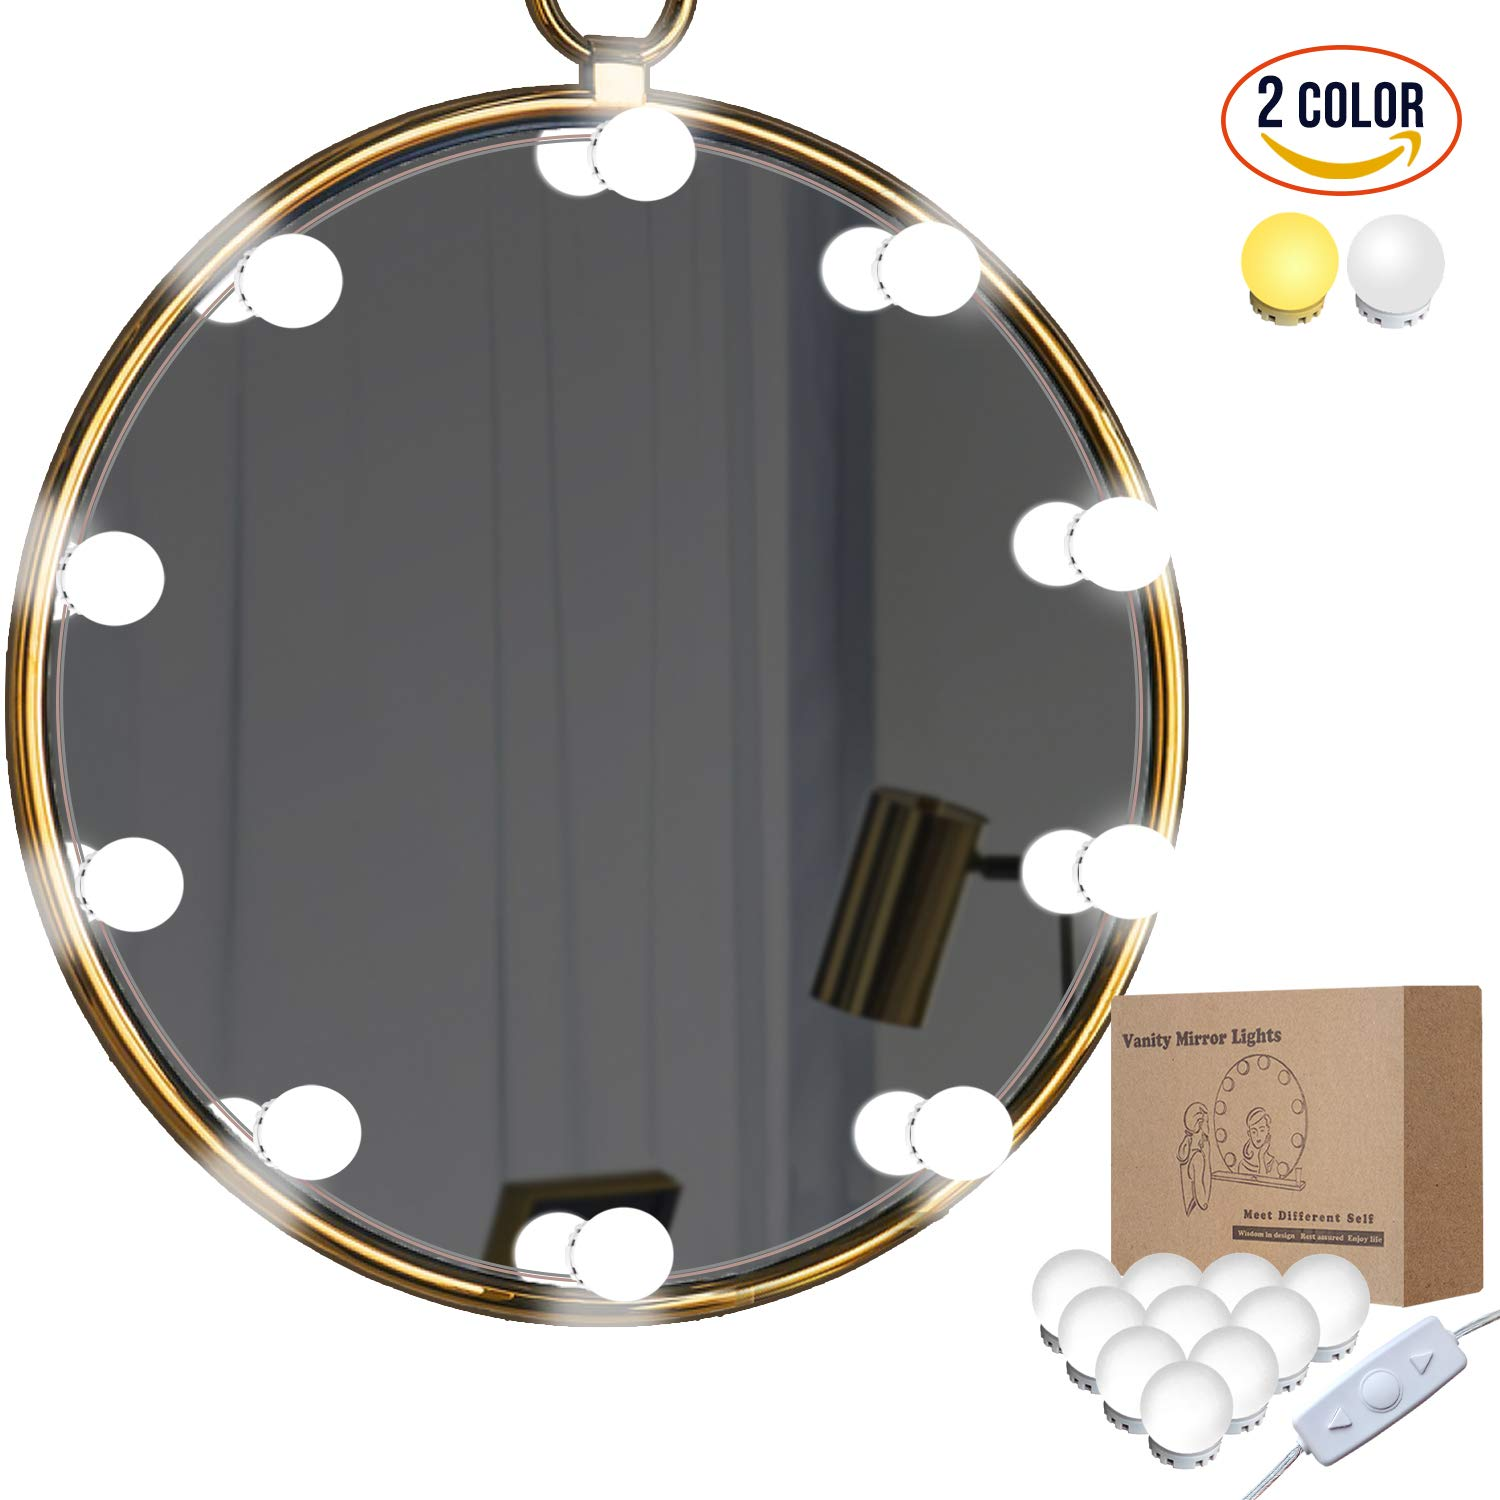 Vanity Mirror Lights Kit, LED Lights for Mirror with Dimmer and USB Phone Charger, 2 Color LED Makeup Mirror Lights, Lighting Fixture Strip for Makeup Vanity Table Set